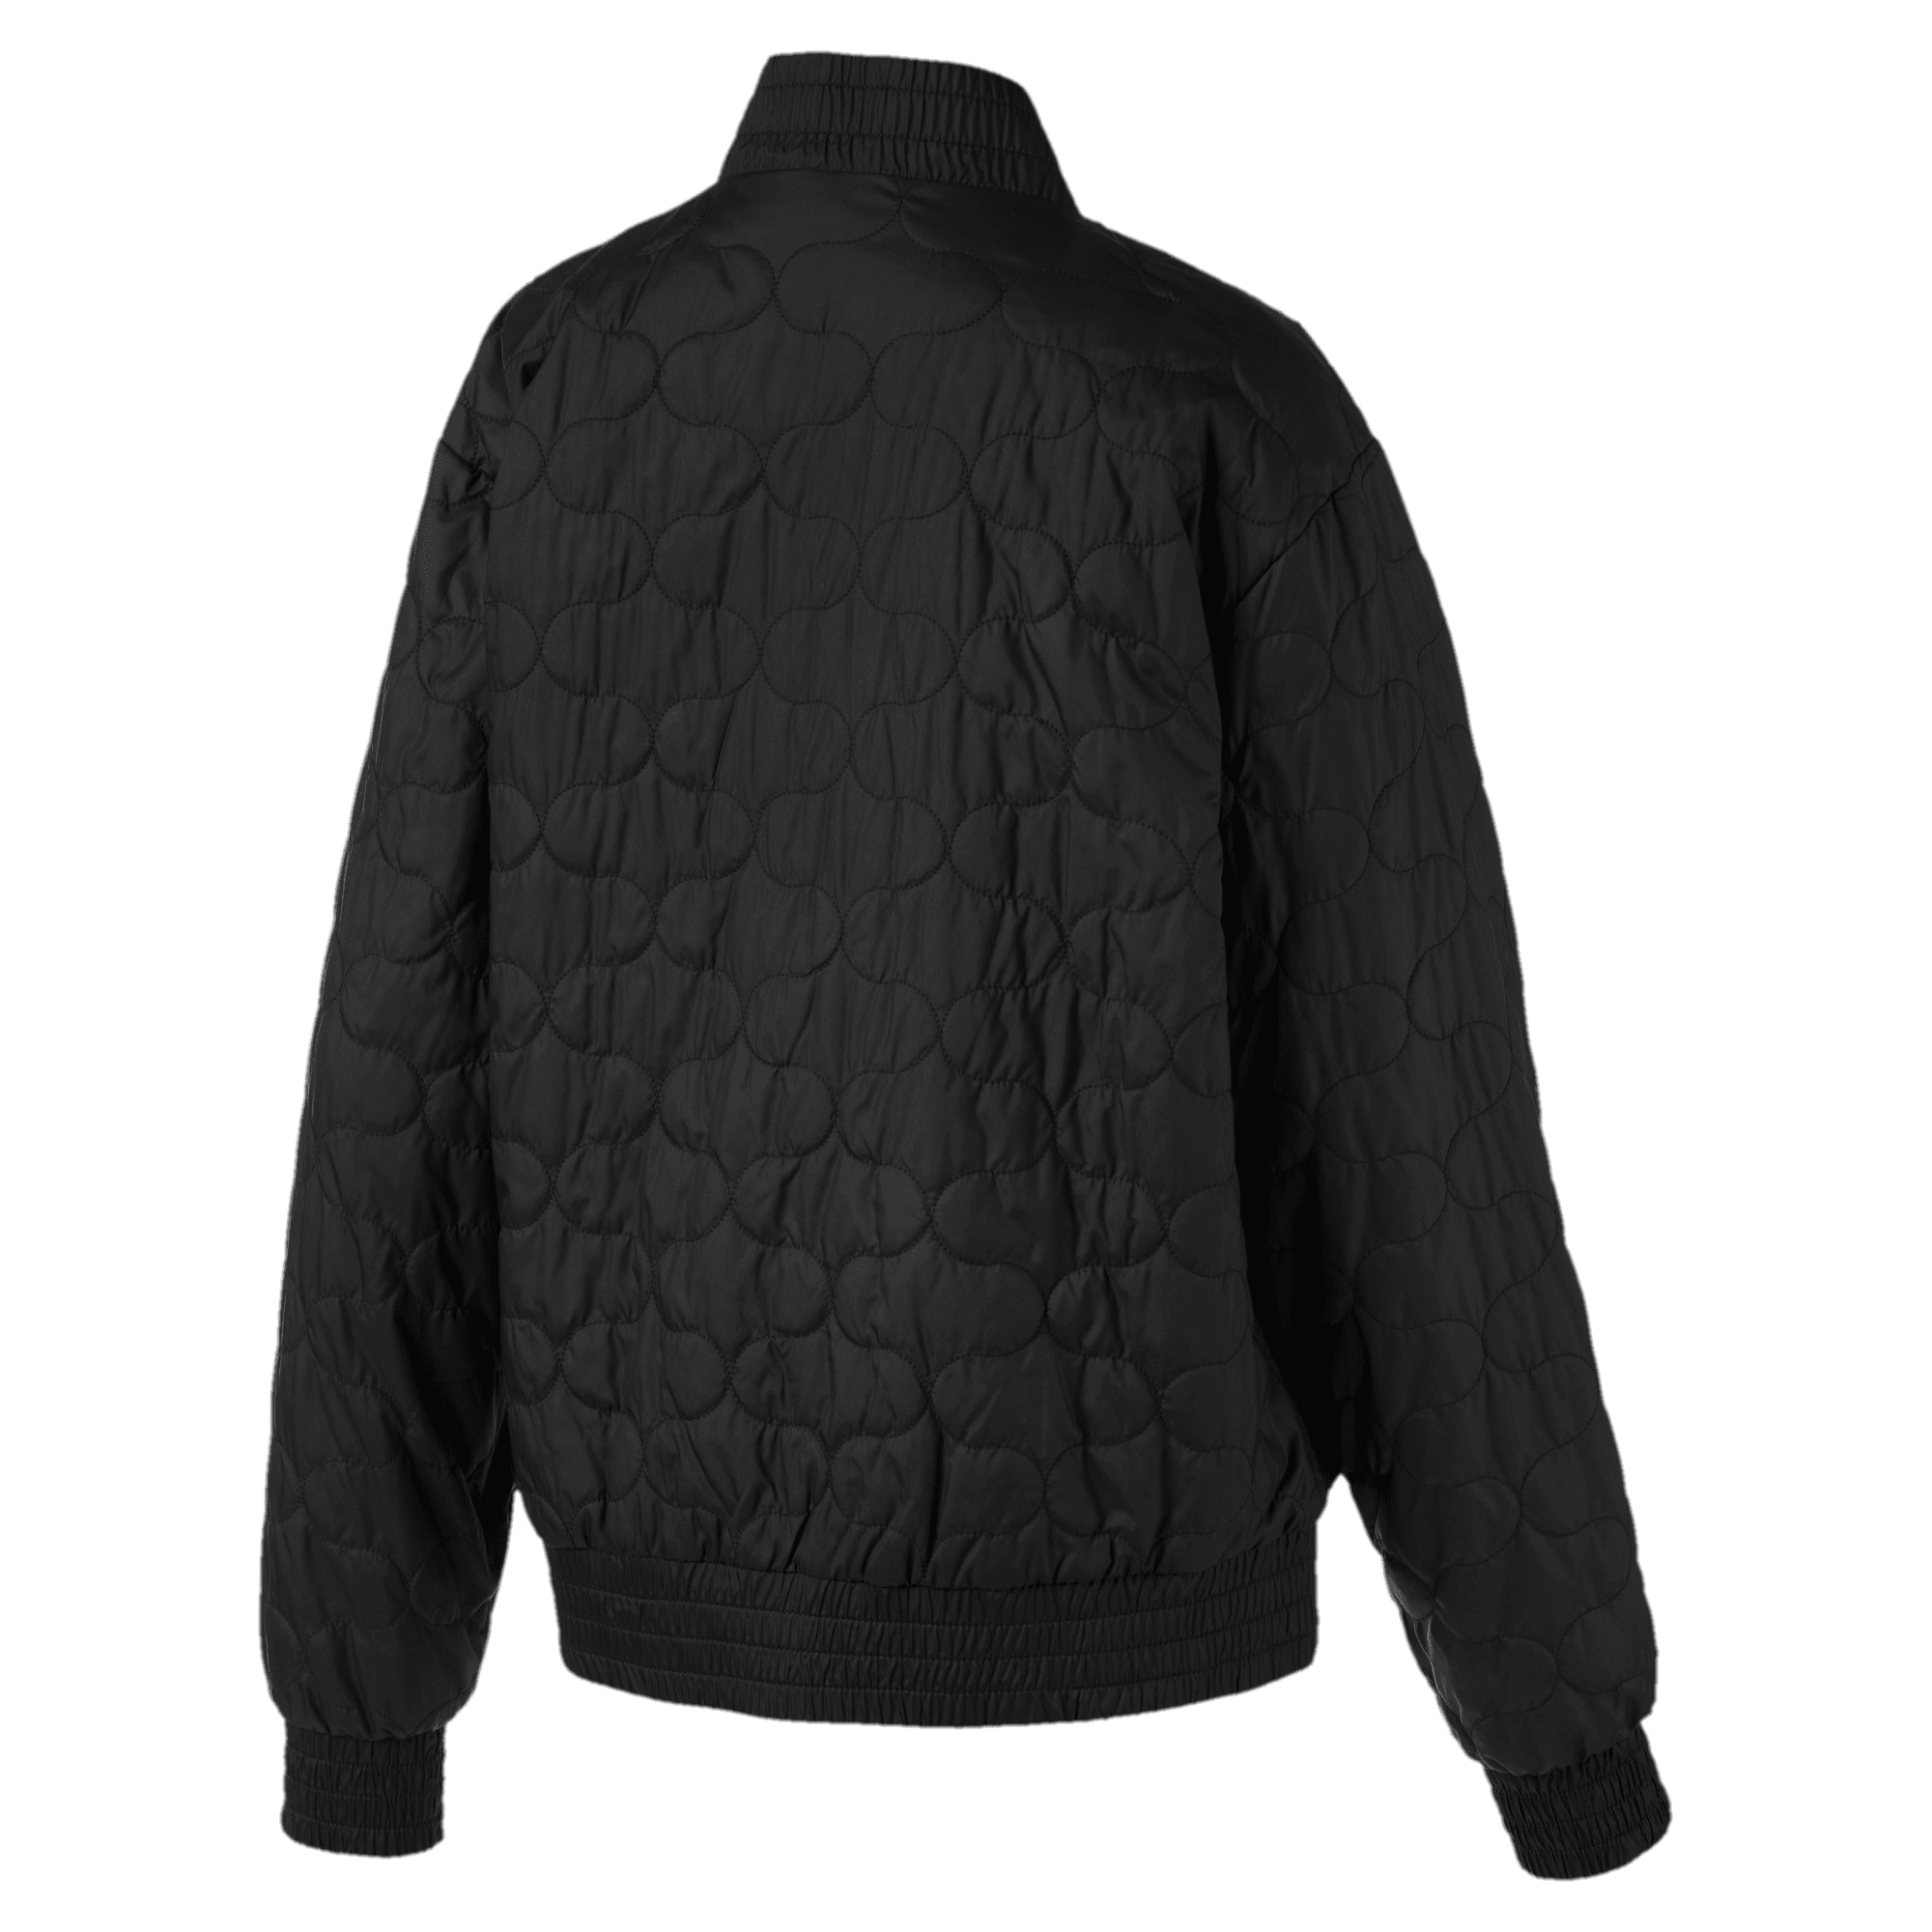 Thumbnail 5 of Woven Women's Bomber Jacket, Puma Black, medium